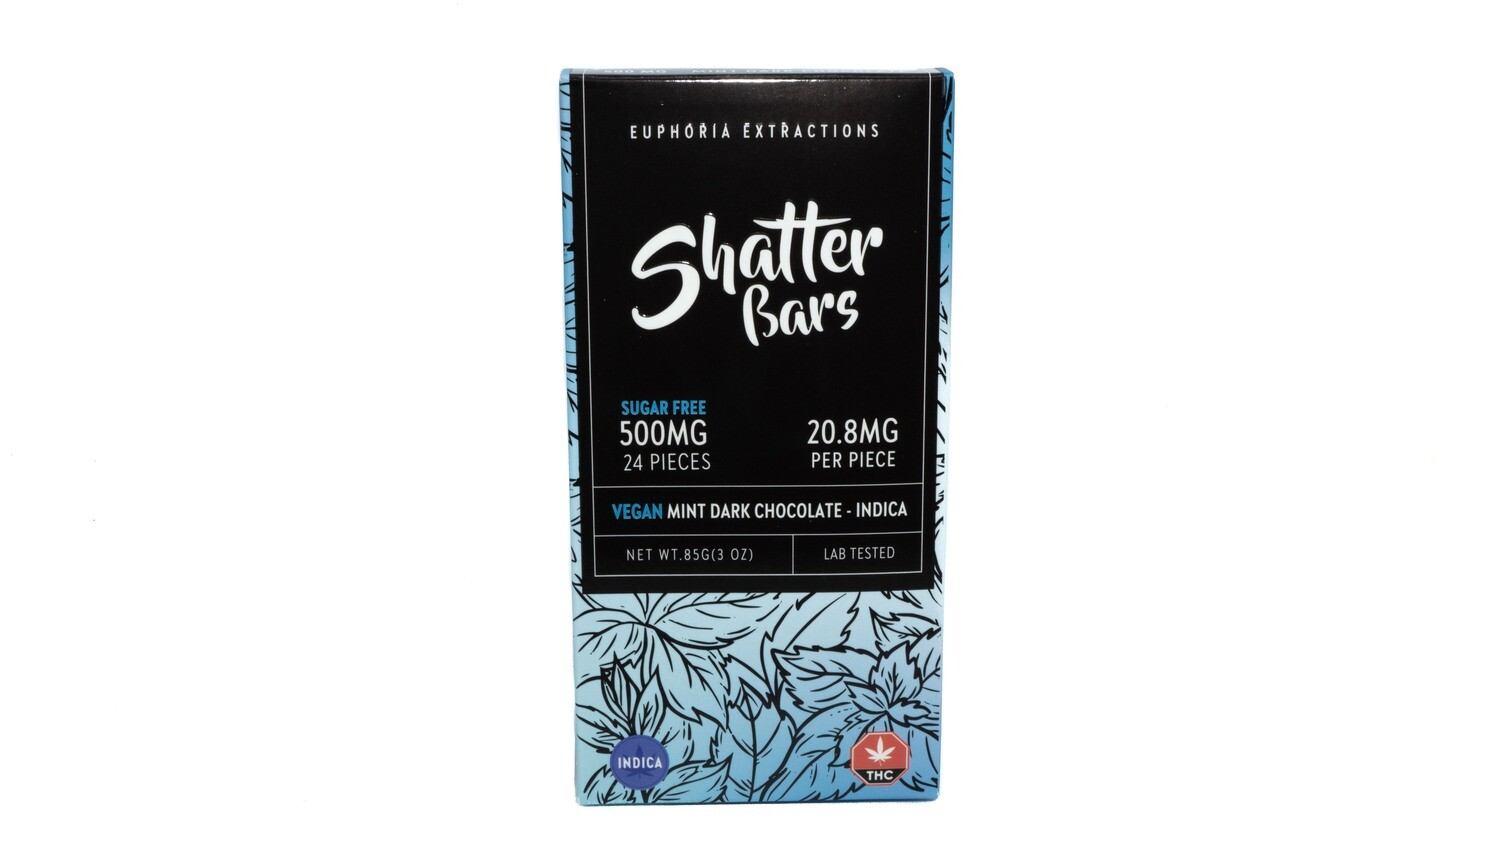 Vegan Mint Dark Chocolate Indica Shatter Bar By Euphoria Extractions (Sugar Free) (500mg) (Current Strain: King Louis)